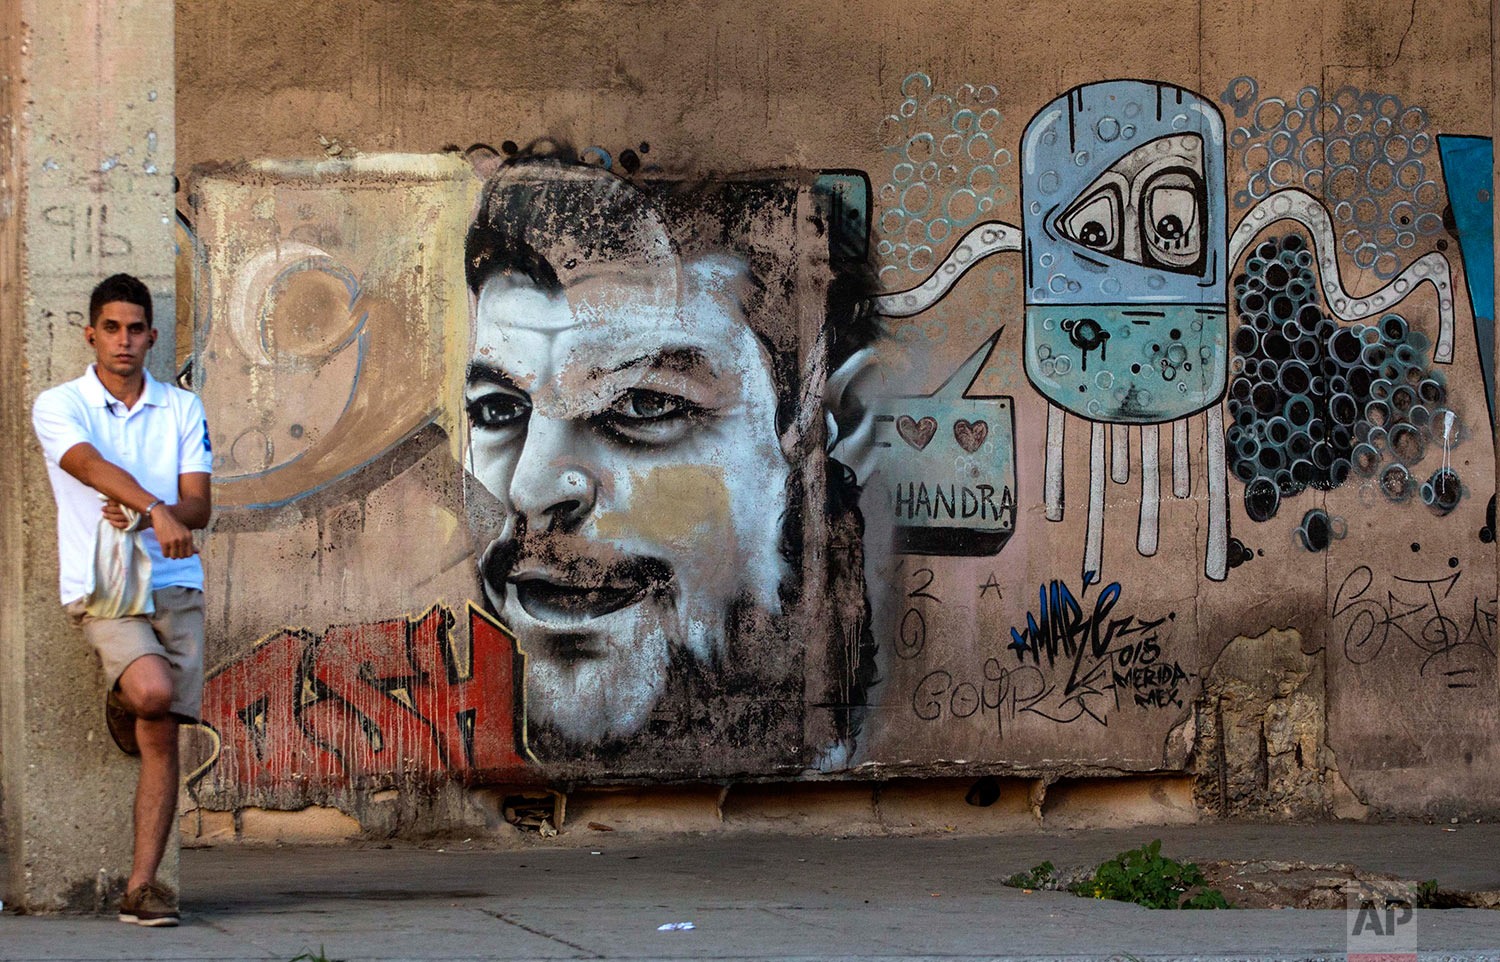 A youth waits at a bus stop beside a mural painting of Che Guevara in Havana, Cuba, Thursday, July 28, 2016. Che Guevara was an Argentine Marxist revolutionary, physician, author, guerrilla leader and major figure of the Cuban Revolution (AP Photo/Desmond Boylan)